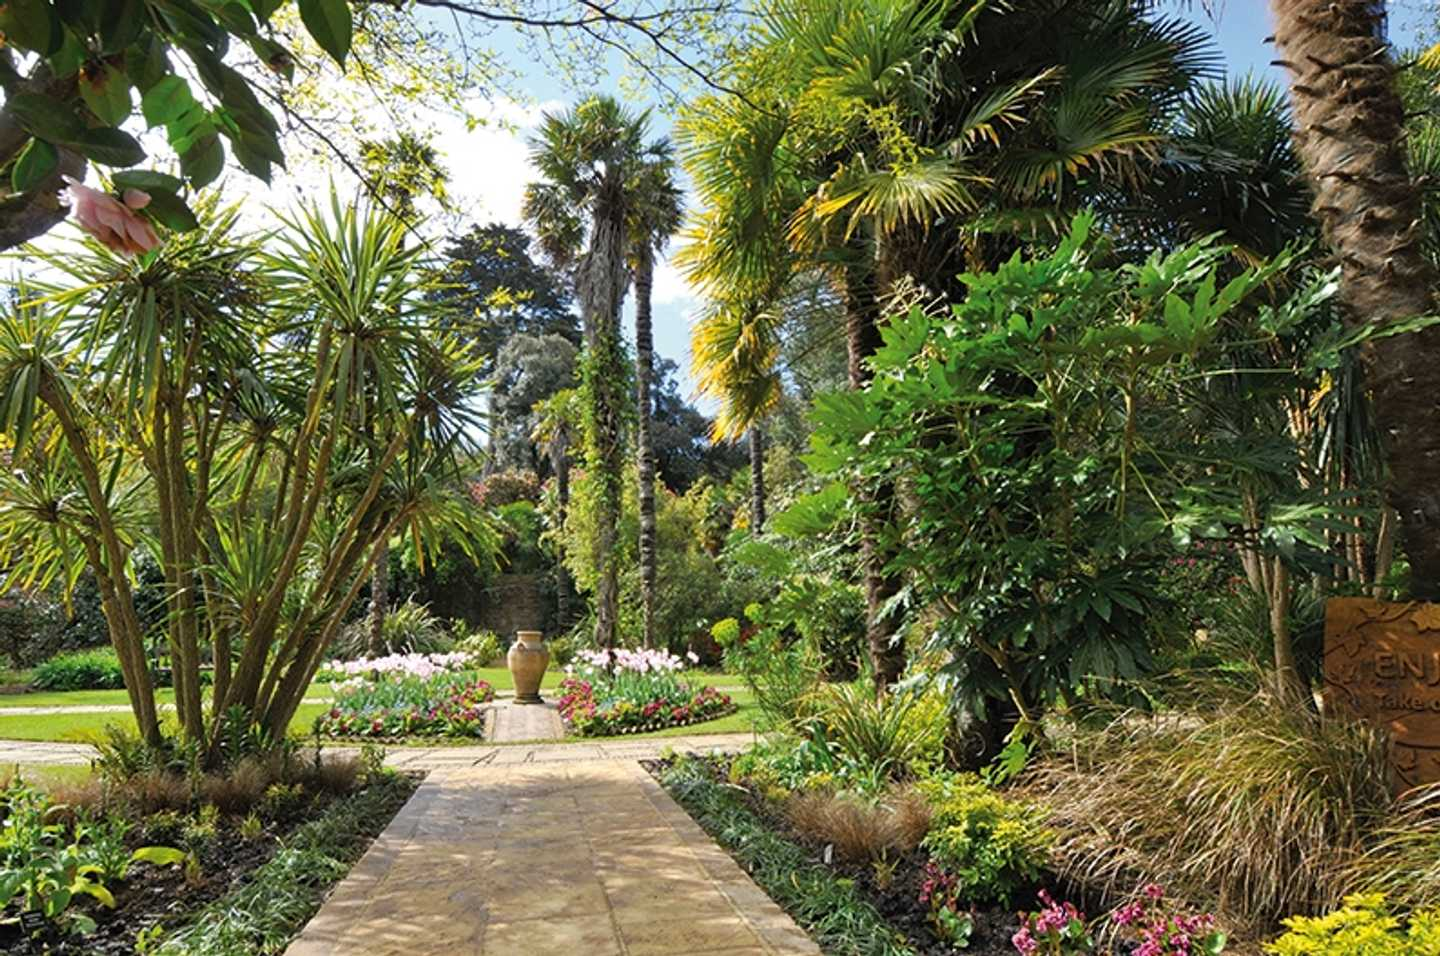 Walkway at Abbotsbury Subtropical Gardens